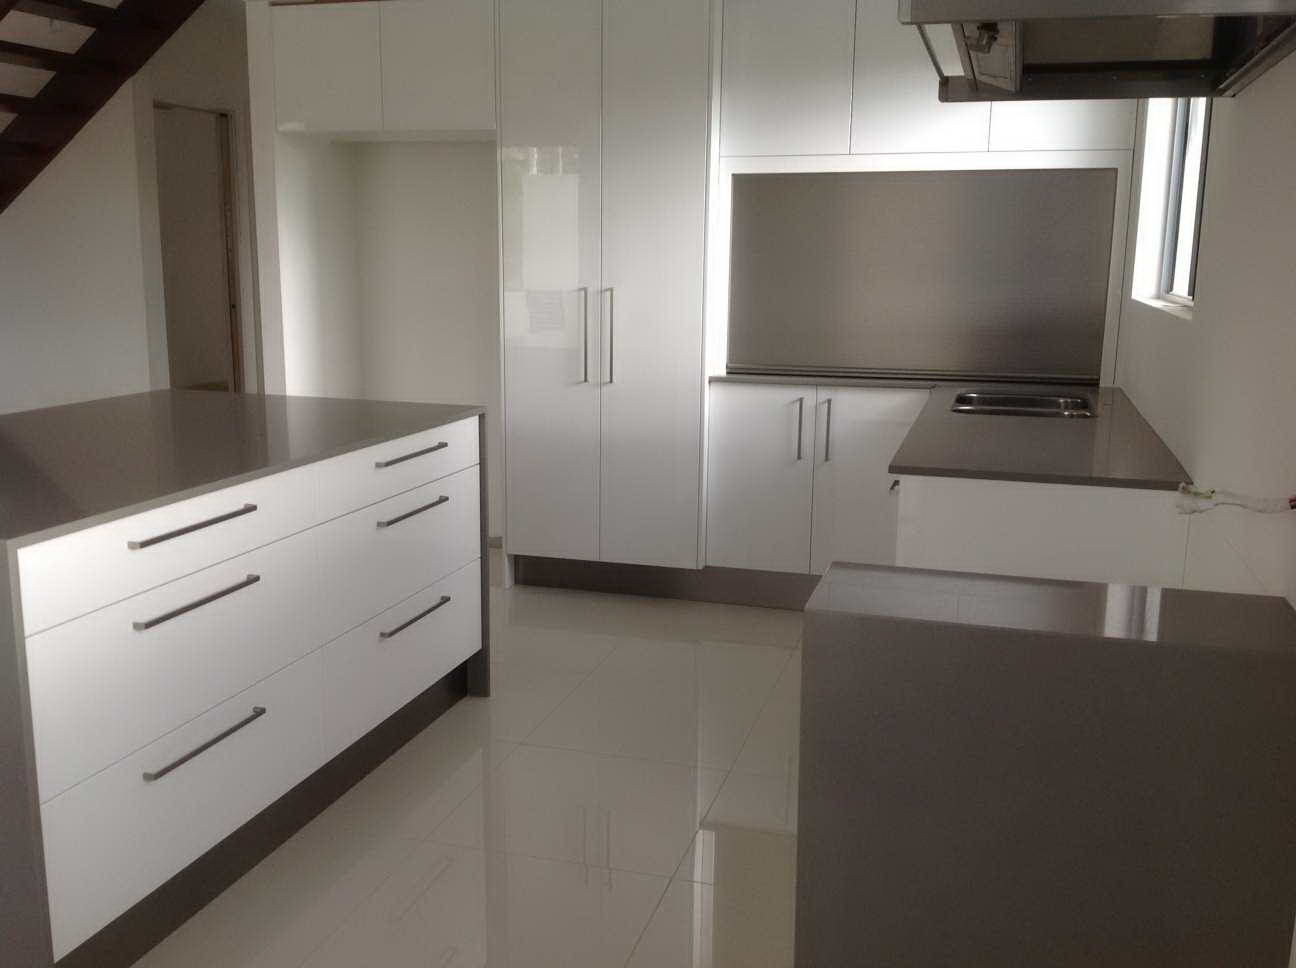 Kitchen Renovations - Gold Coast - Kitchen Brokers Queensland - Lee & Jacqui - Burleigh Heads